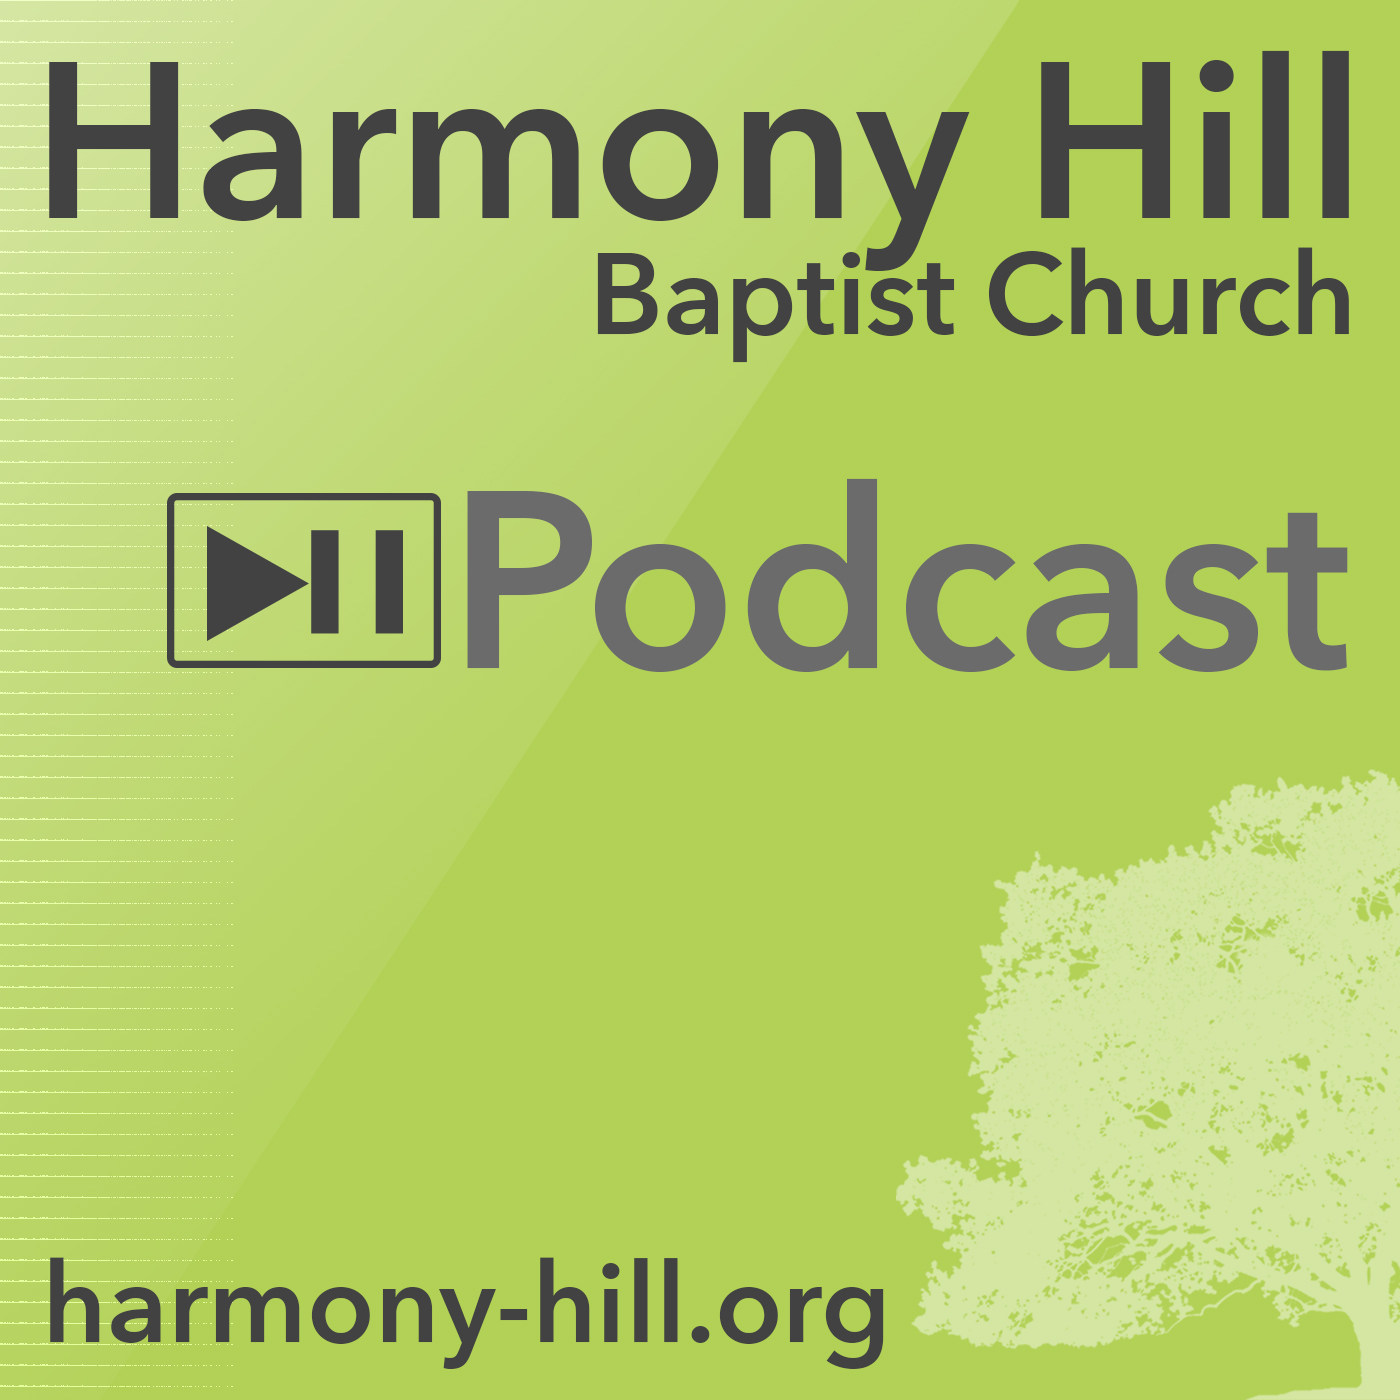 Harmony Hill Baptist Church